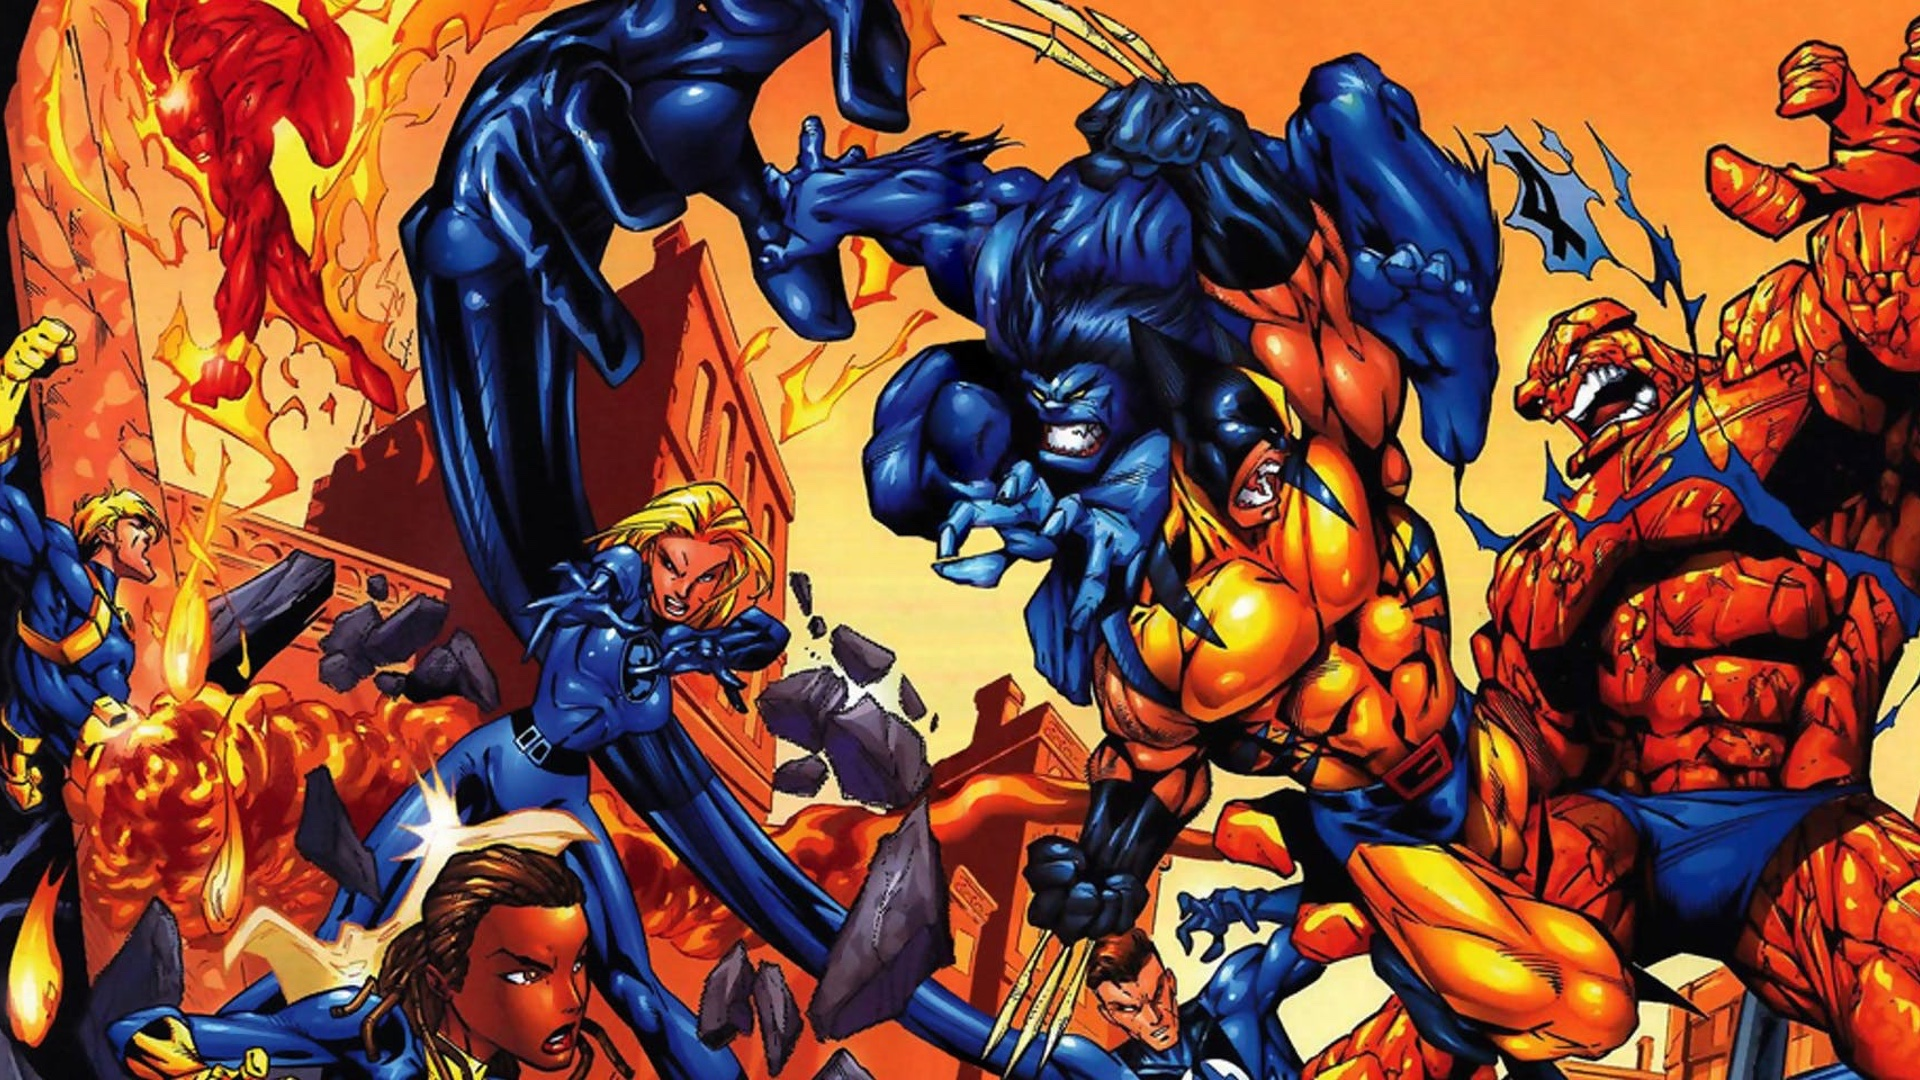 fox-was-planning-a-big-marvel-crossover-movie-with-x-men-fantastic-four-deadpool-and-daredevil-social.jpg